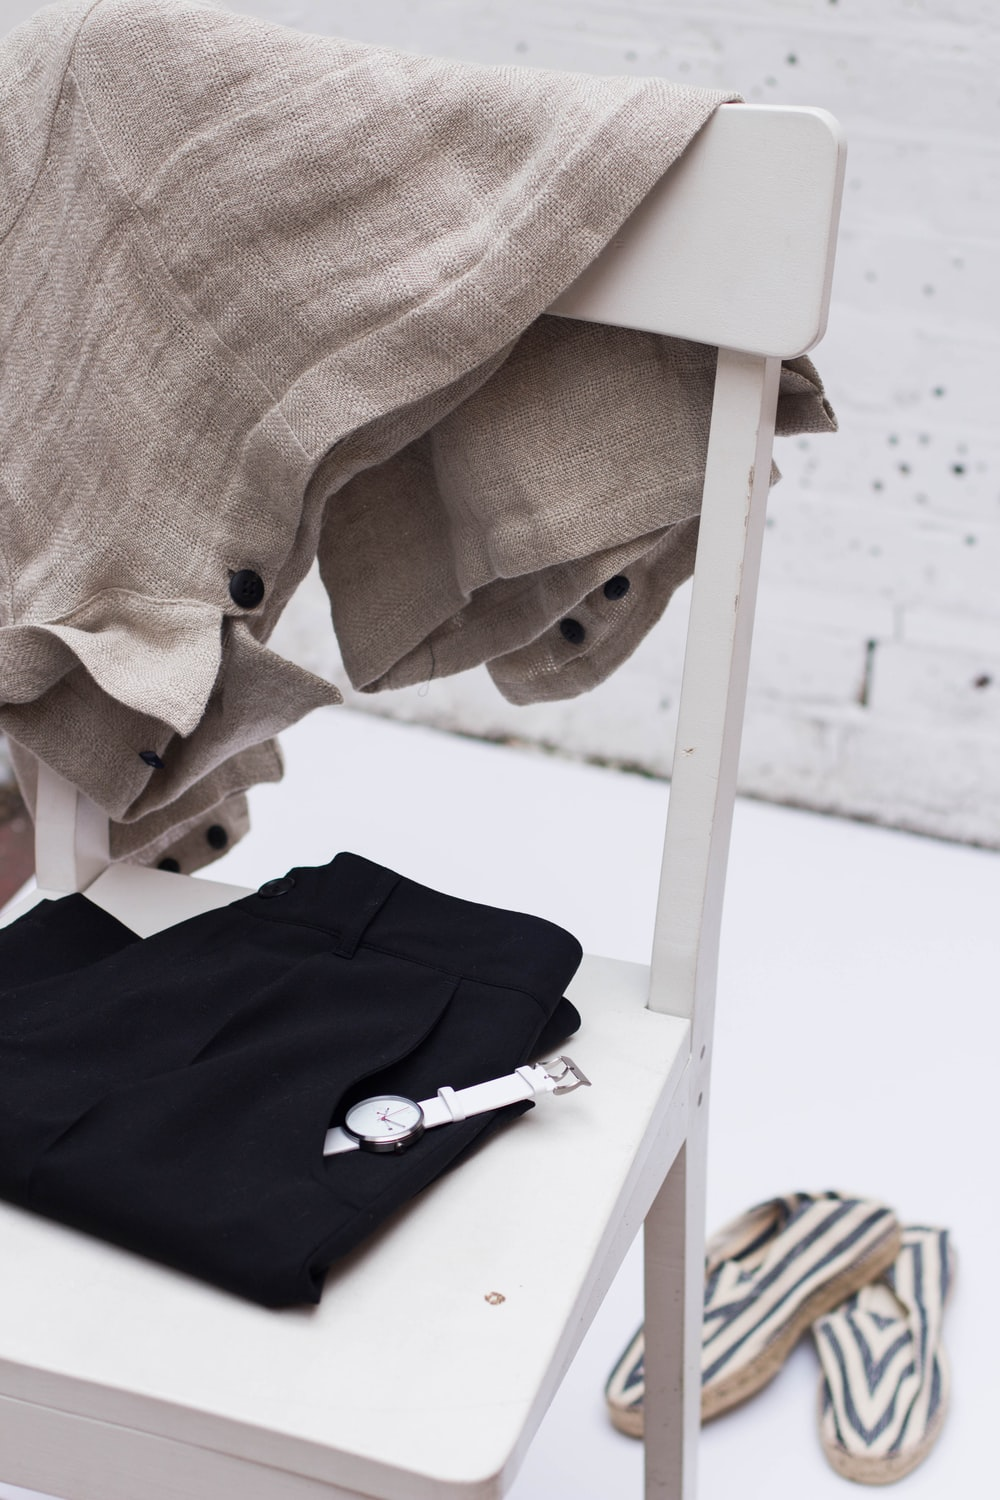 Clothes and a watch on a white wooden chair